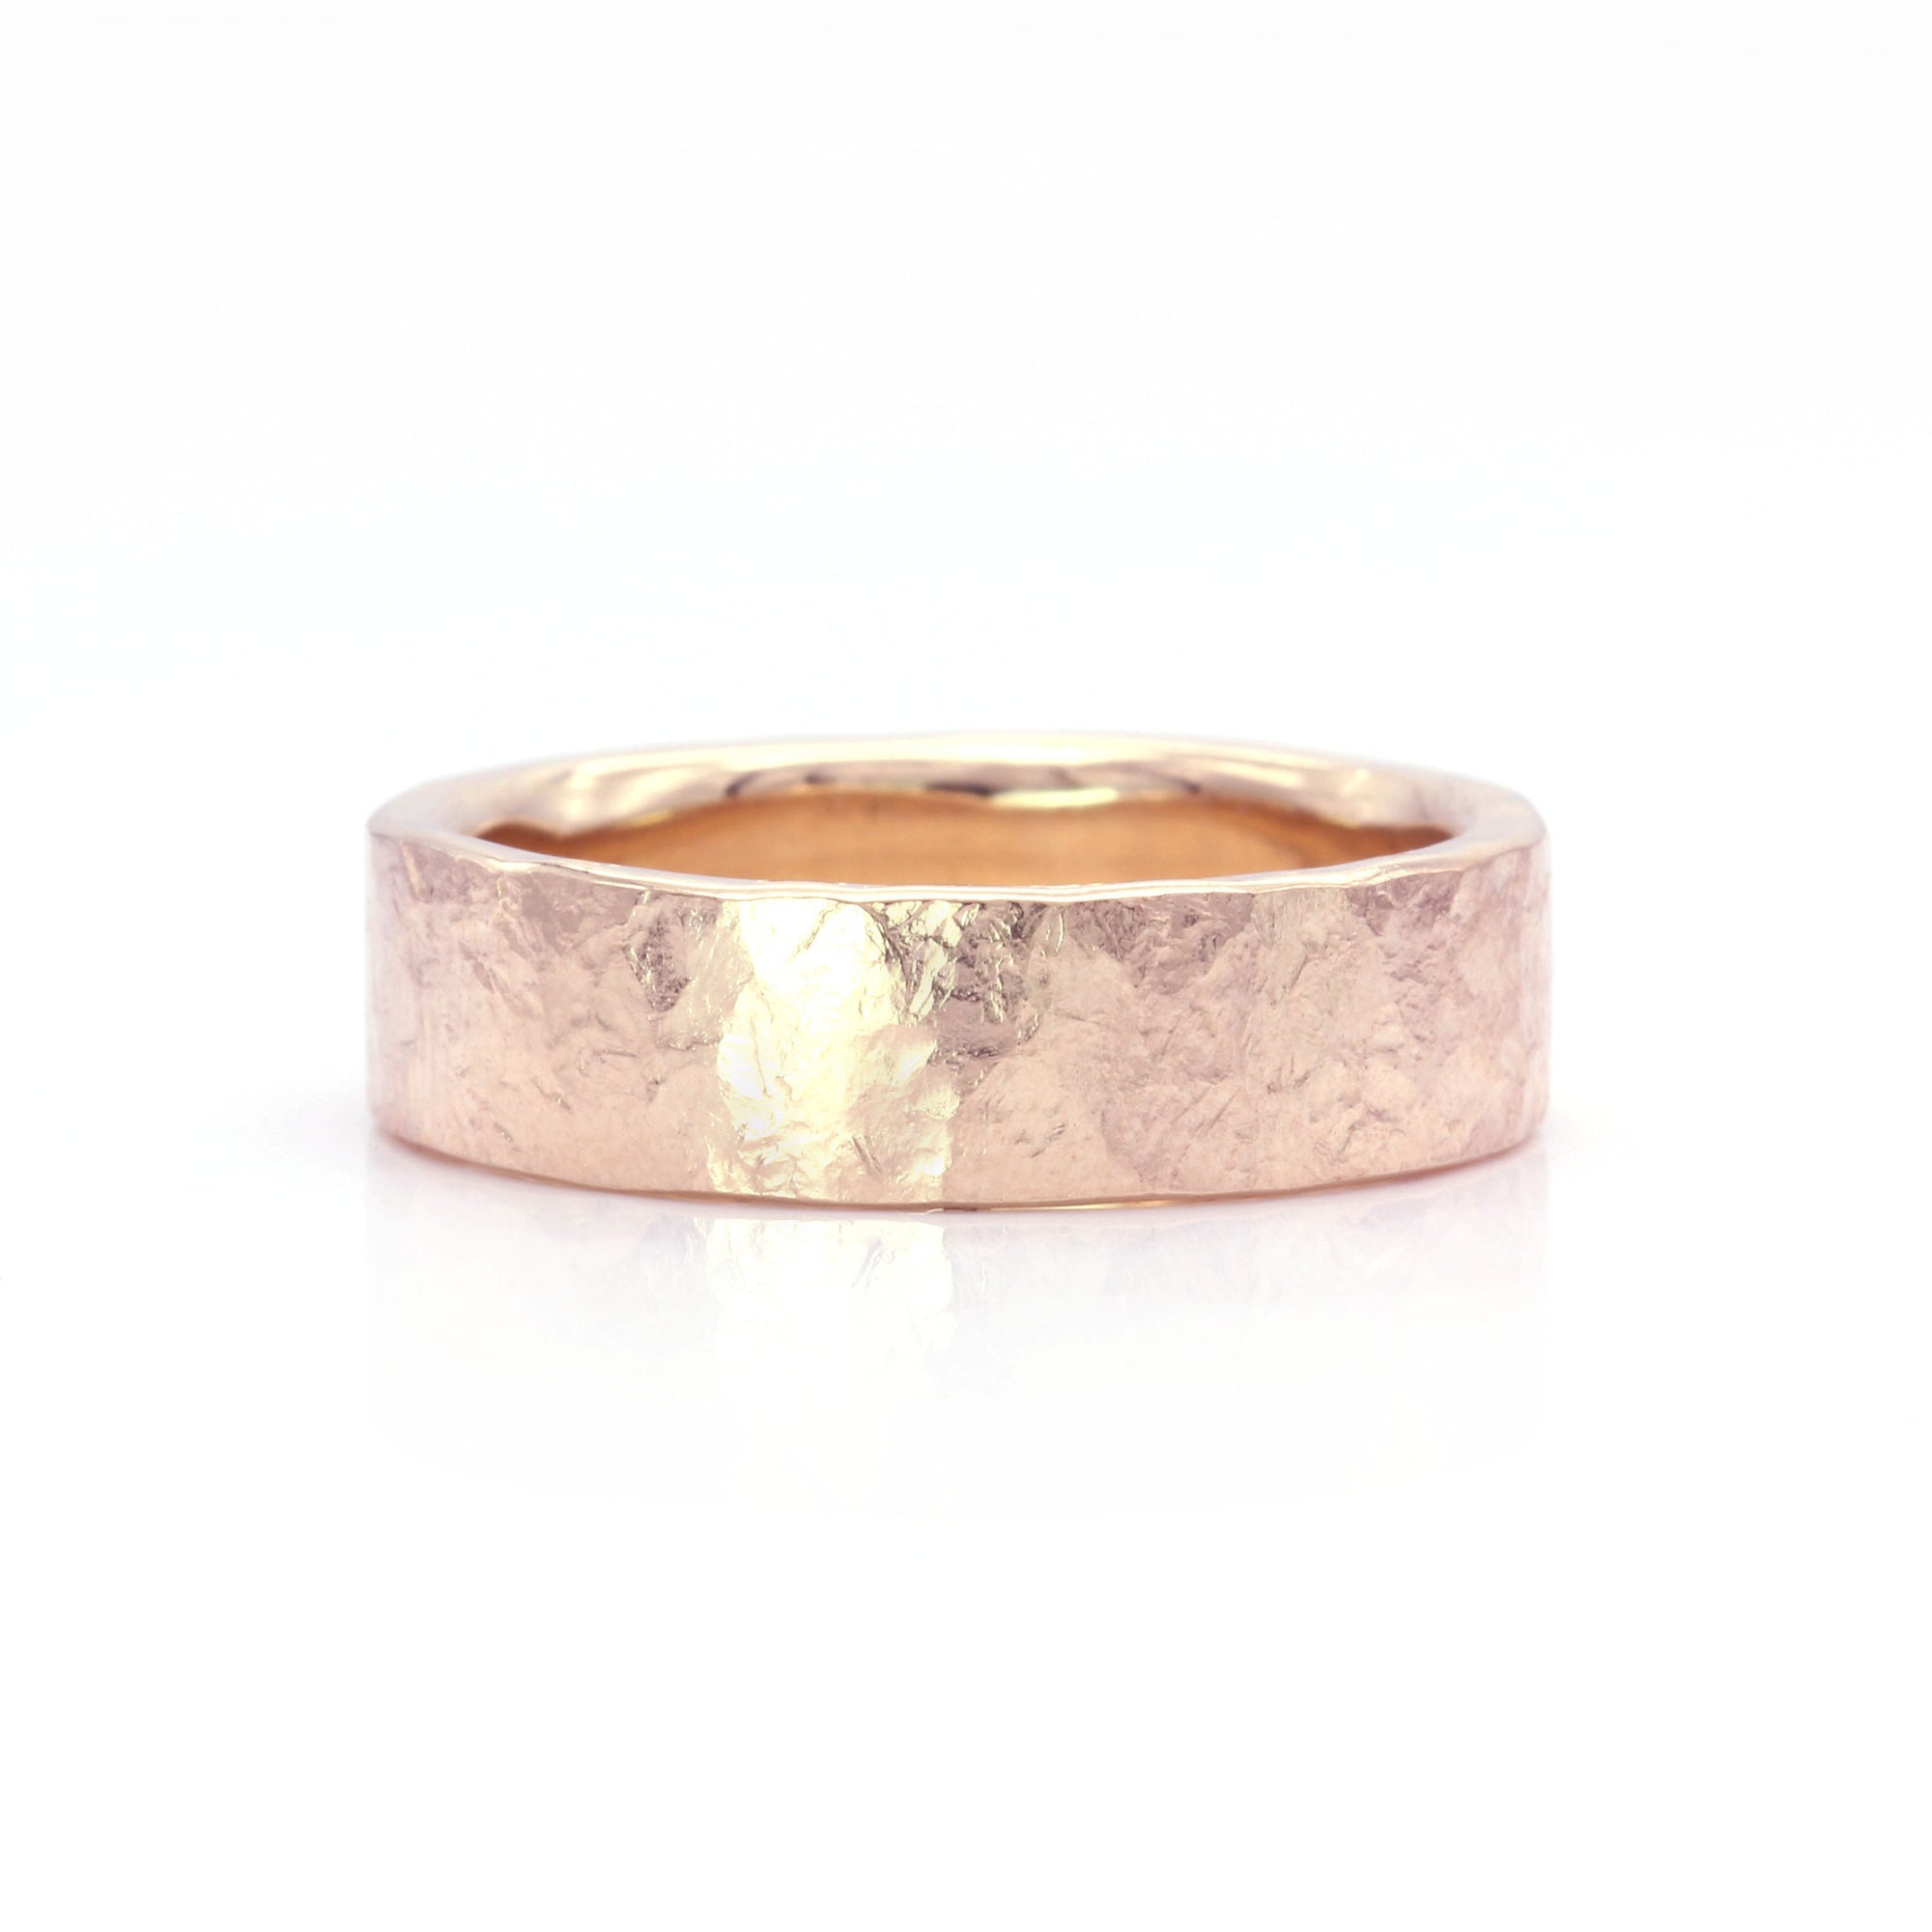 Organic Silk Textured Band | 6mm Wide | Rose Gold